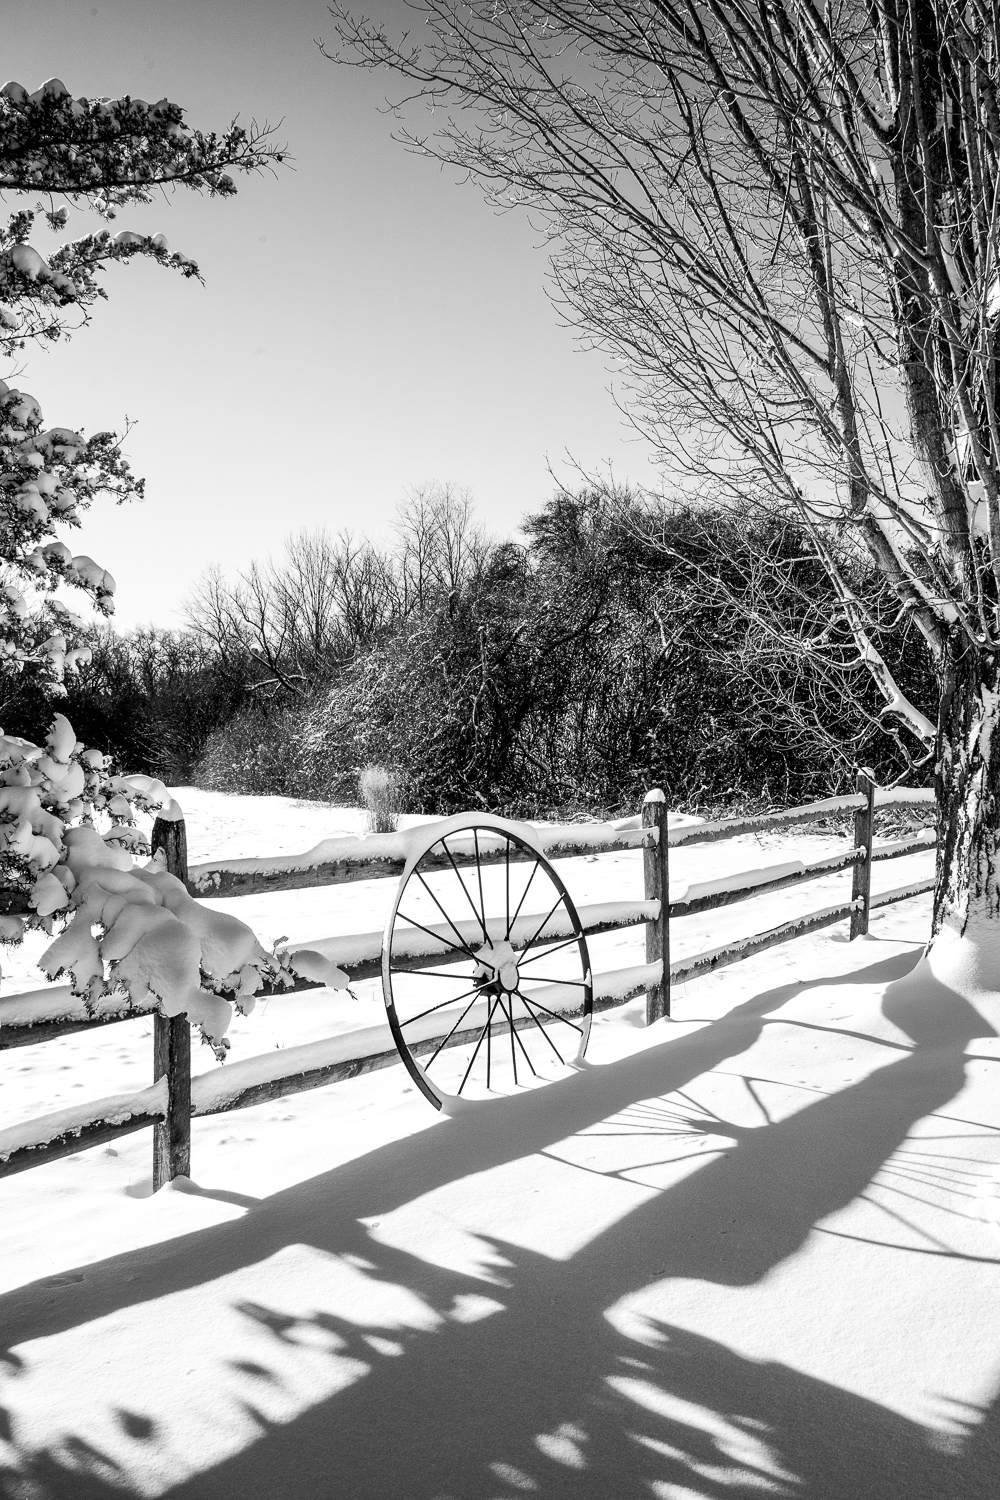 Wagon-Wheel-In-Snow-Broadmor-BW.jpg